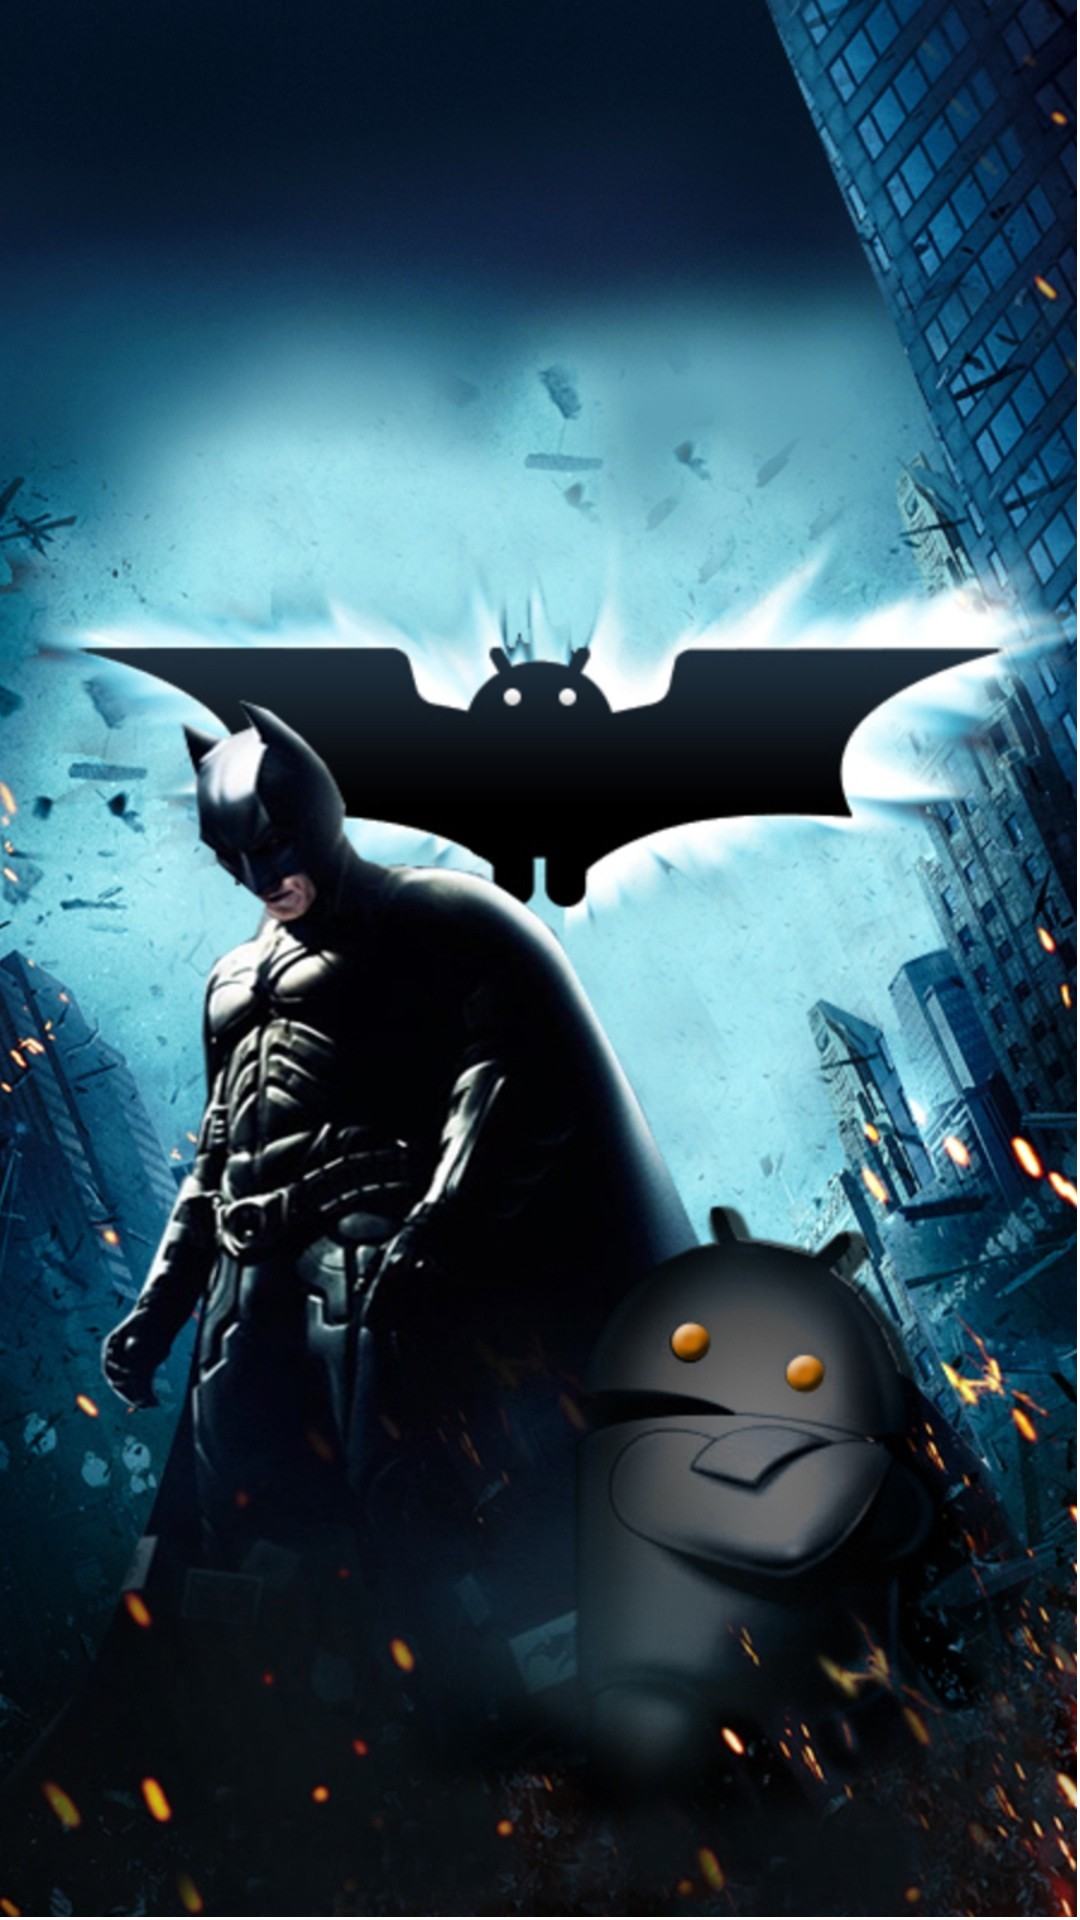 Sony Xperia Z1 Wallpapers Batman Vs Android Wallpaper